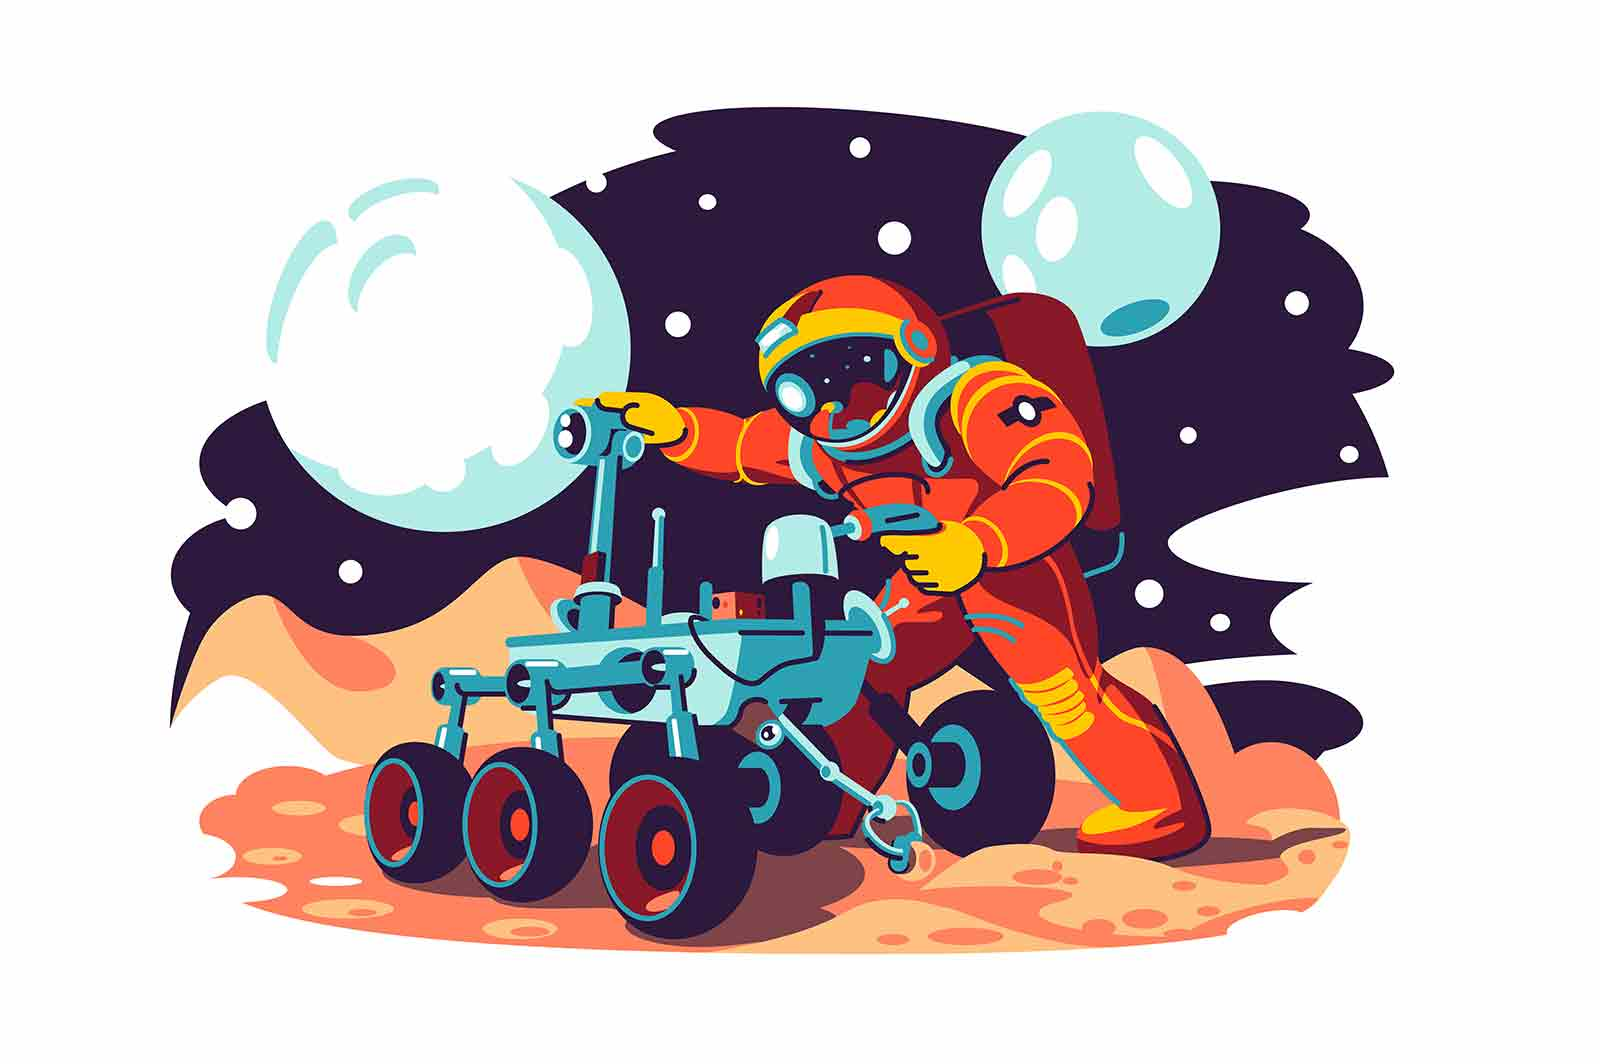 Astronaut in costume fix machine vector illustration. Astronaut character explore space flat style. Planets, galaxy, mars, future, earth and stars concept. Isolated on white background